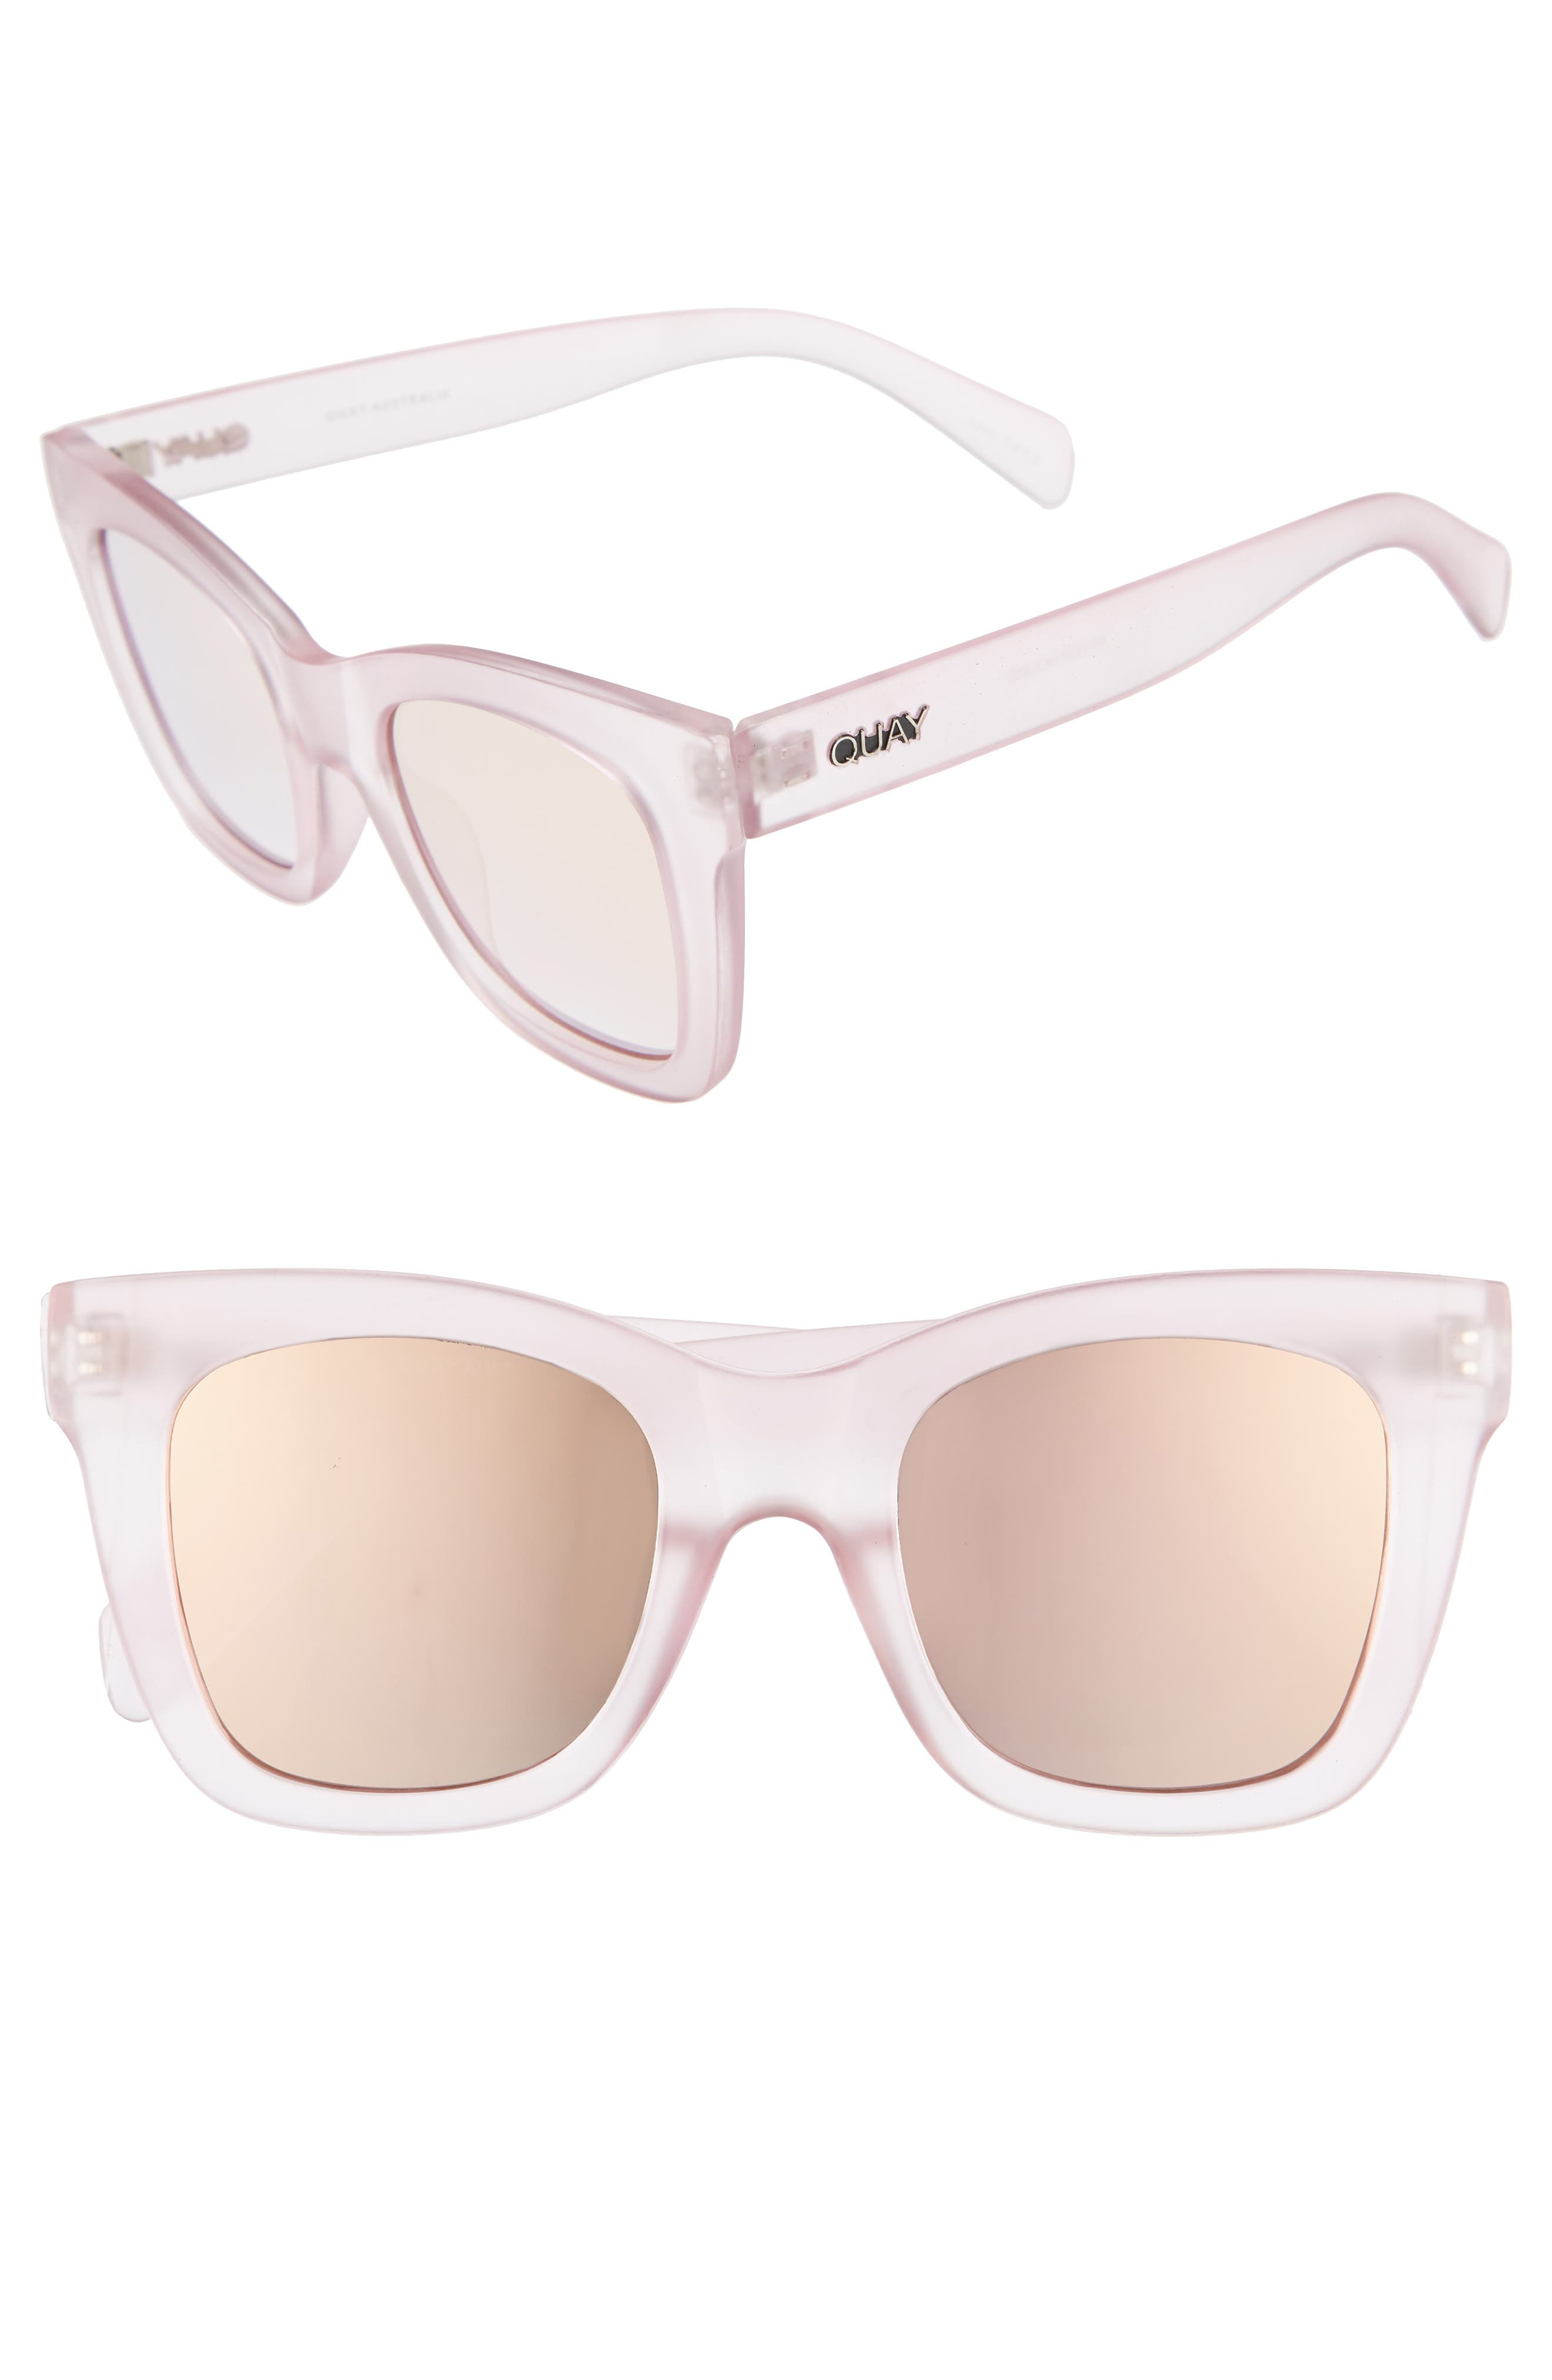 Quay Australia After Hours 50mm Square Sunglasses